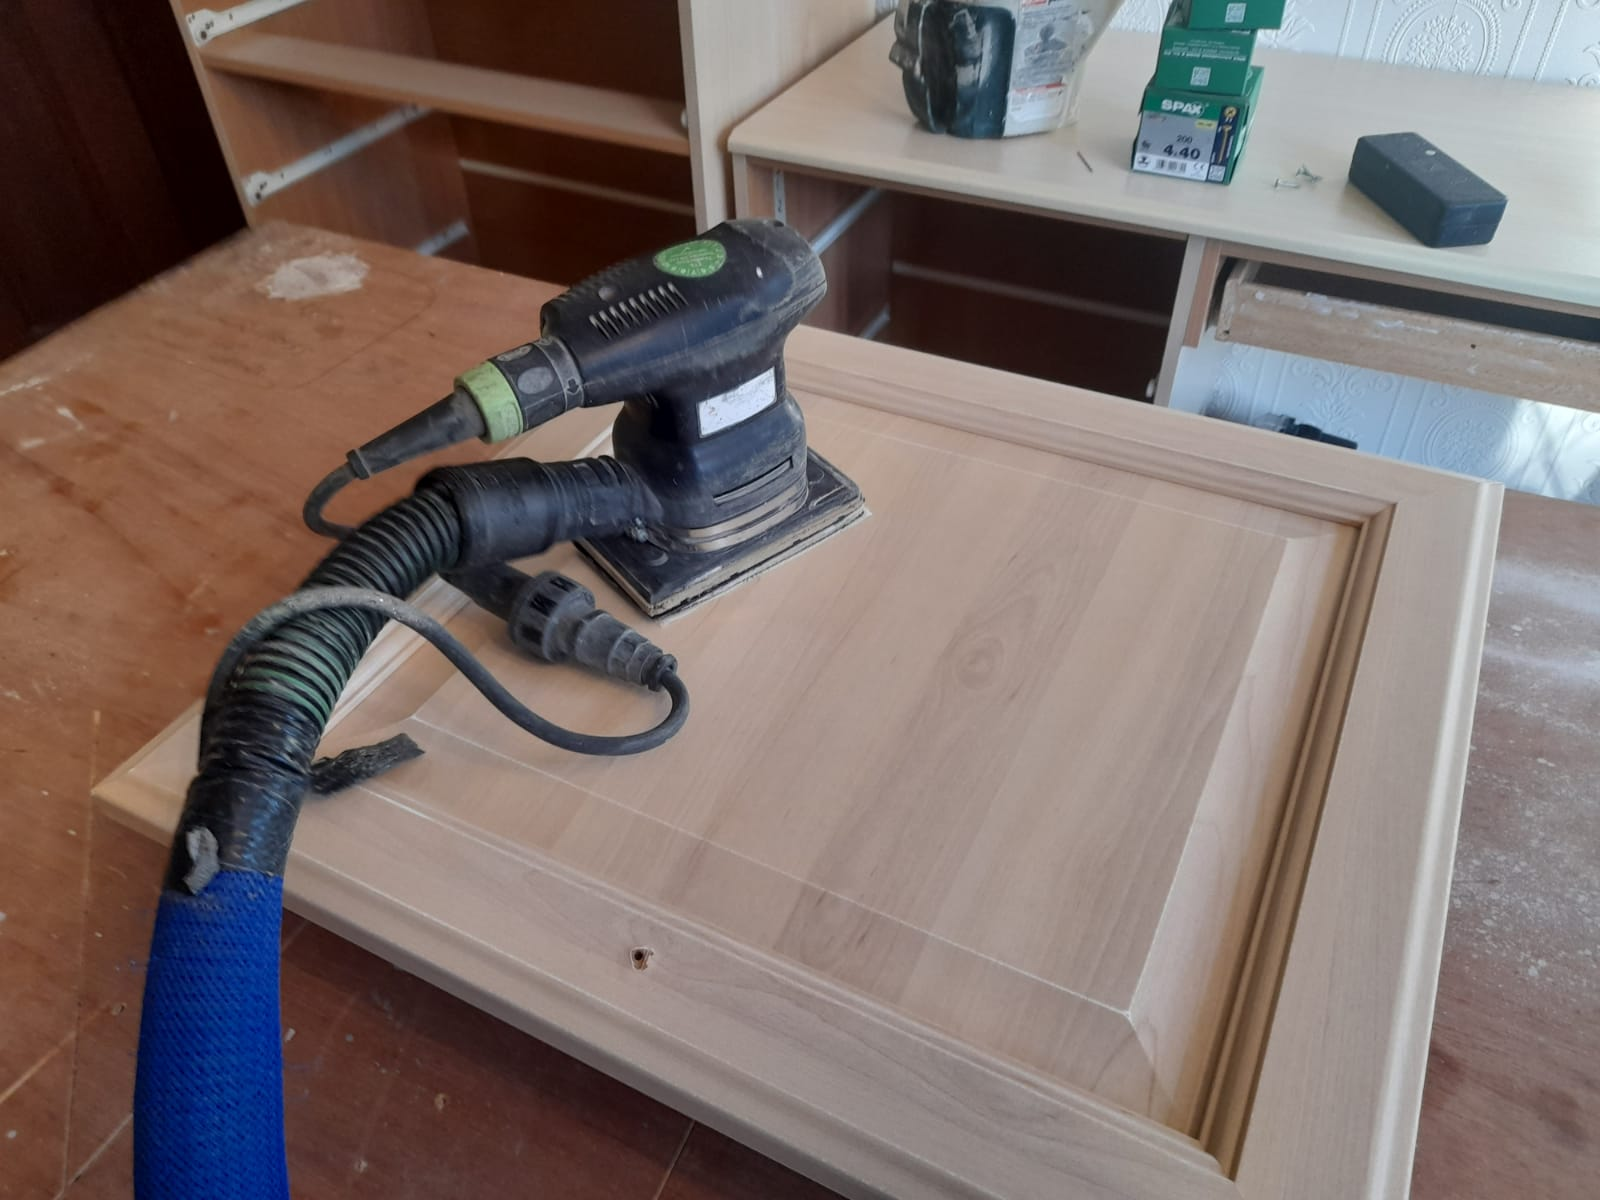 Photo of a decorators professional 99% dust free sander being used to sand down a kitchen cabinet ready for the kitchen to be hand painted